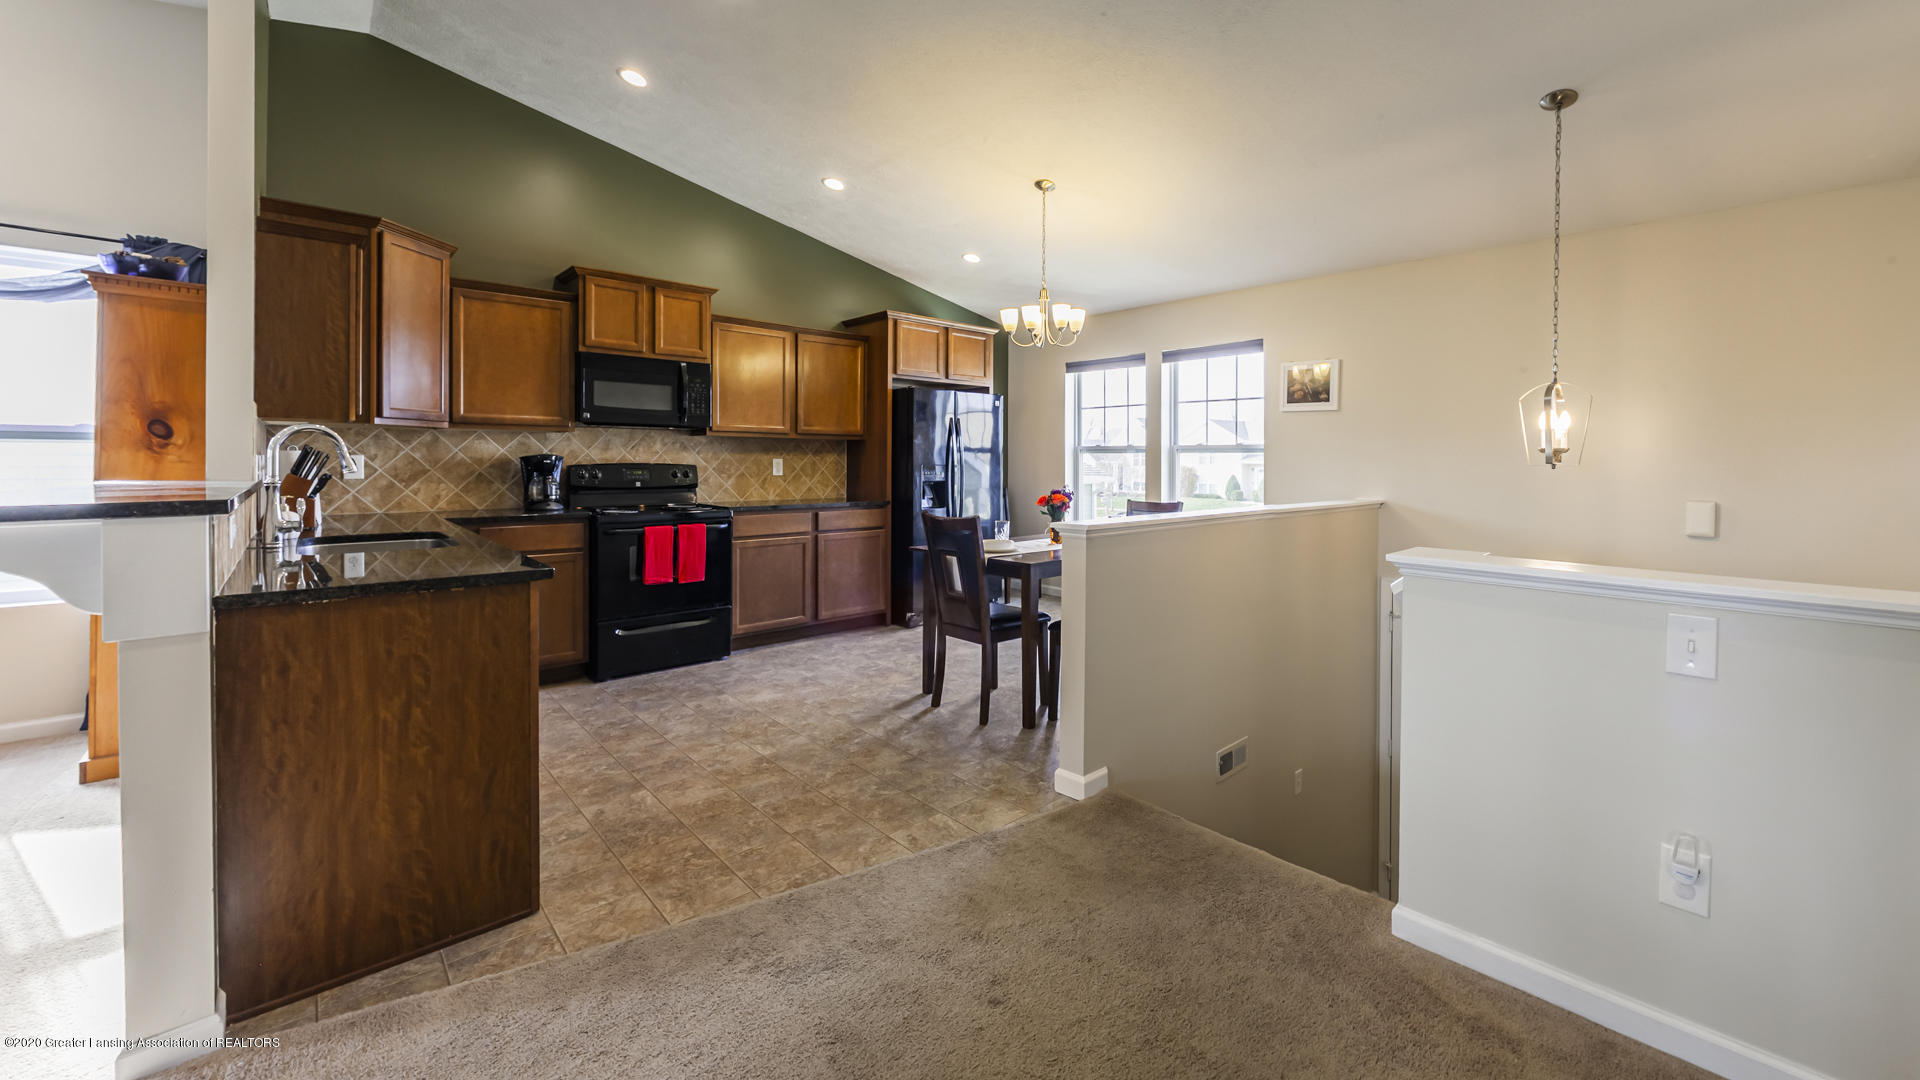 15845 Turnberry St - 15845Turnberry05 - 5